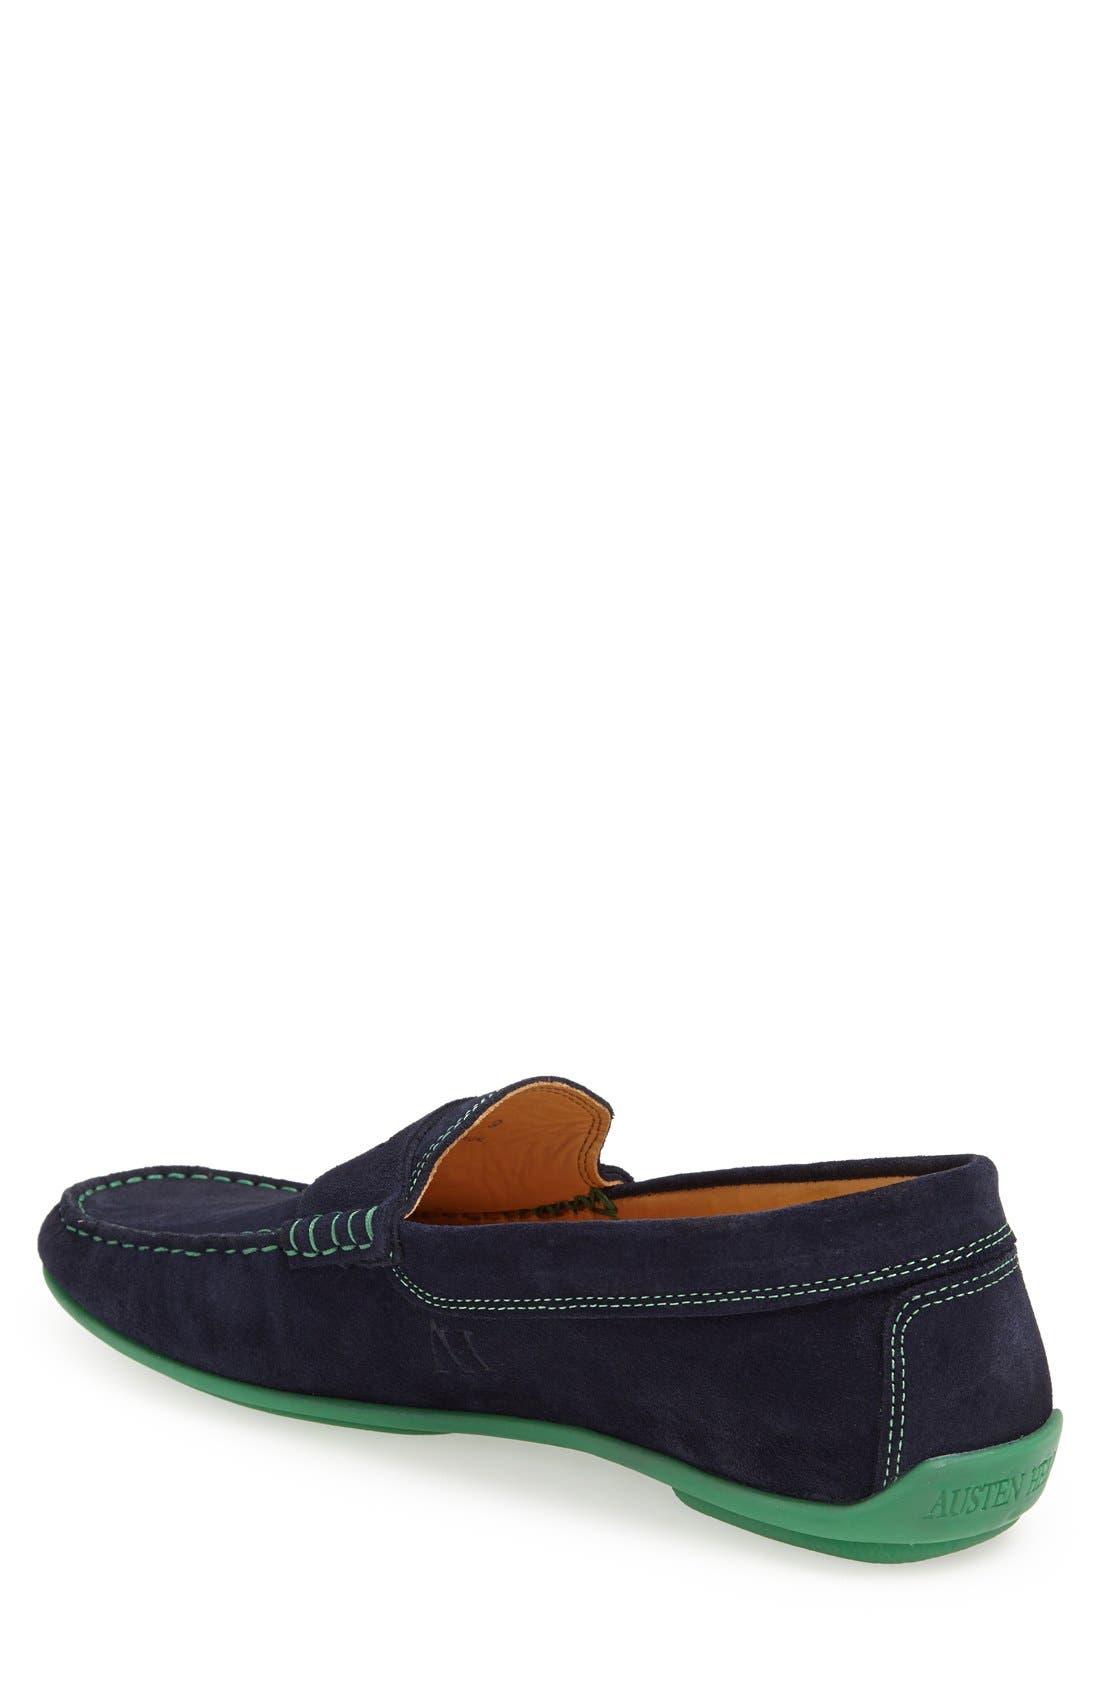 'Chathams' Penny Loafer,                             Alternate thumbnail 9, color,                             NAVY SUEDE/ GREEN